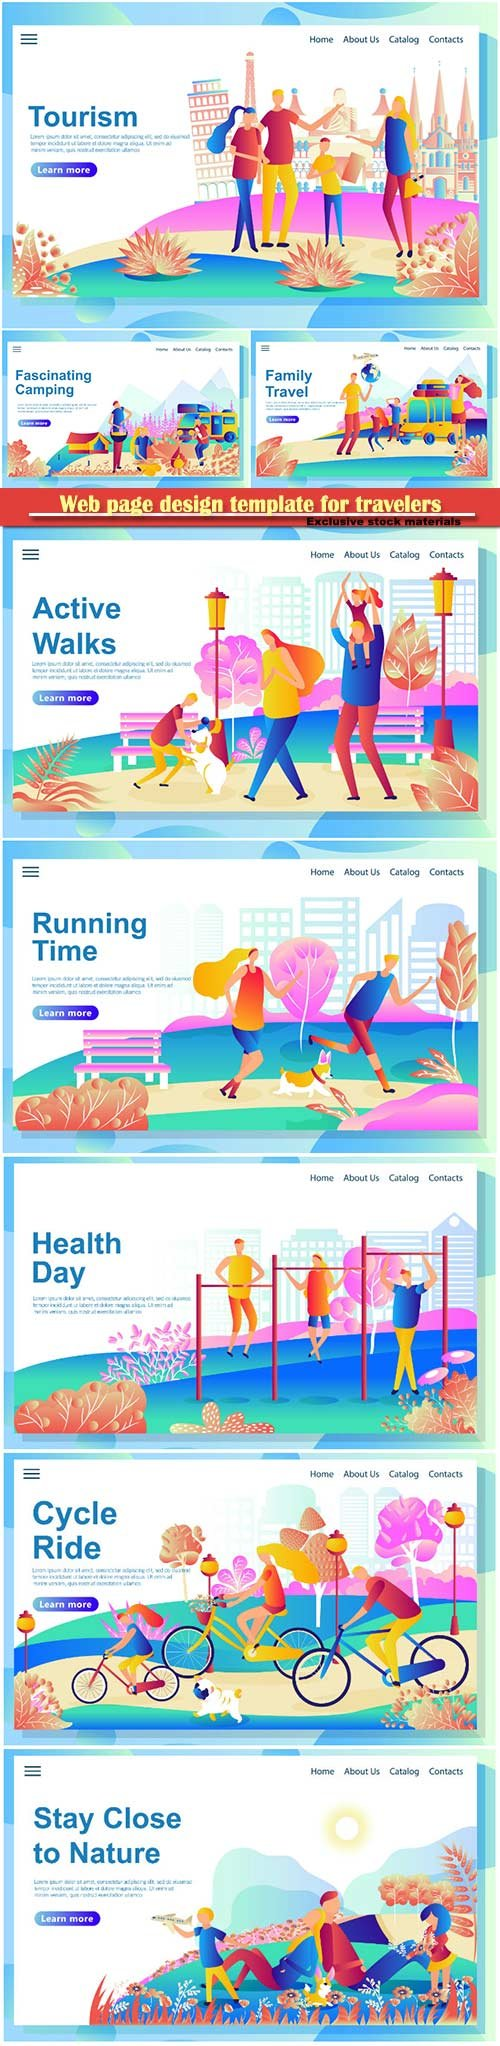 Web page design template for travelers visiting different countries